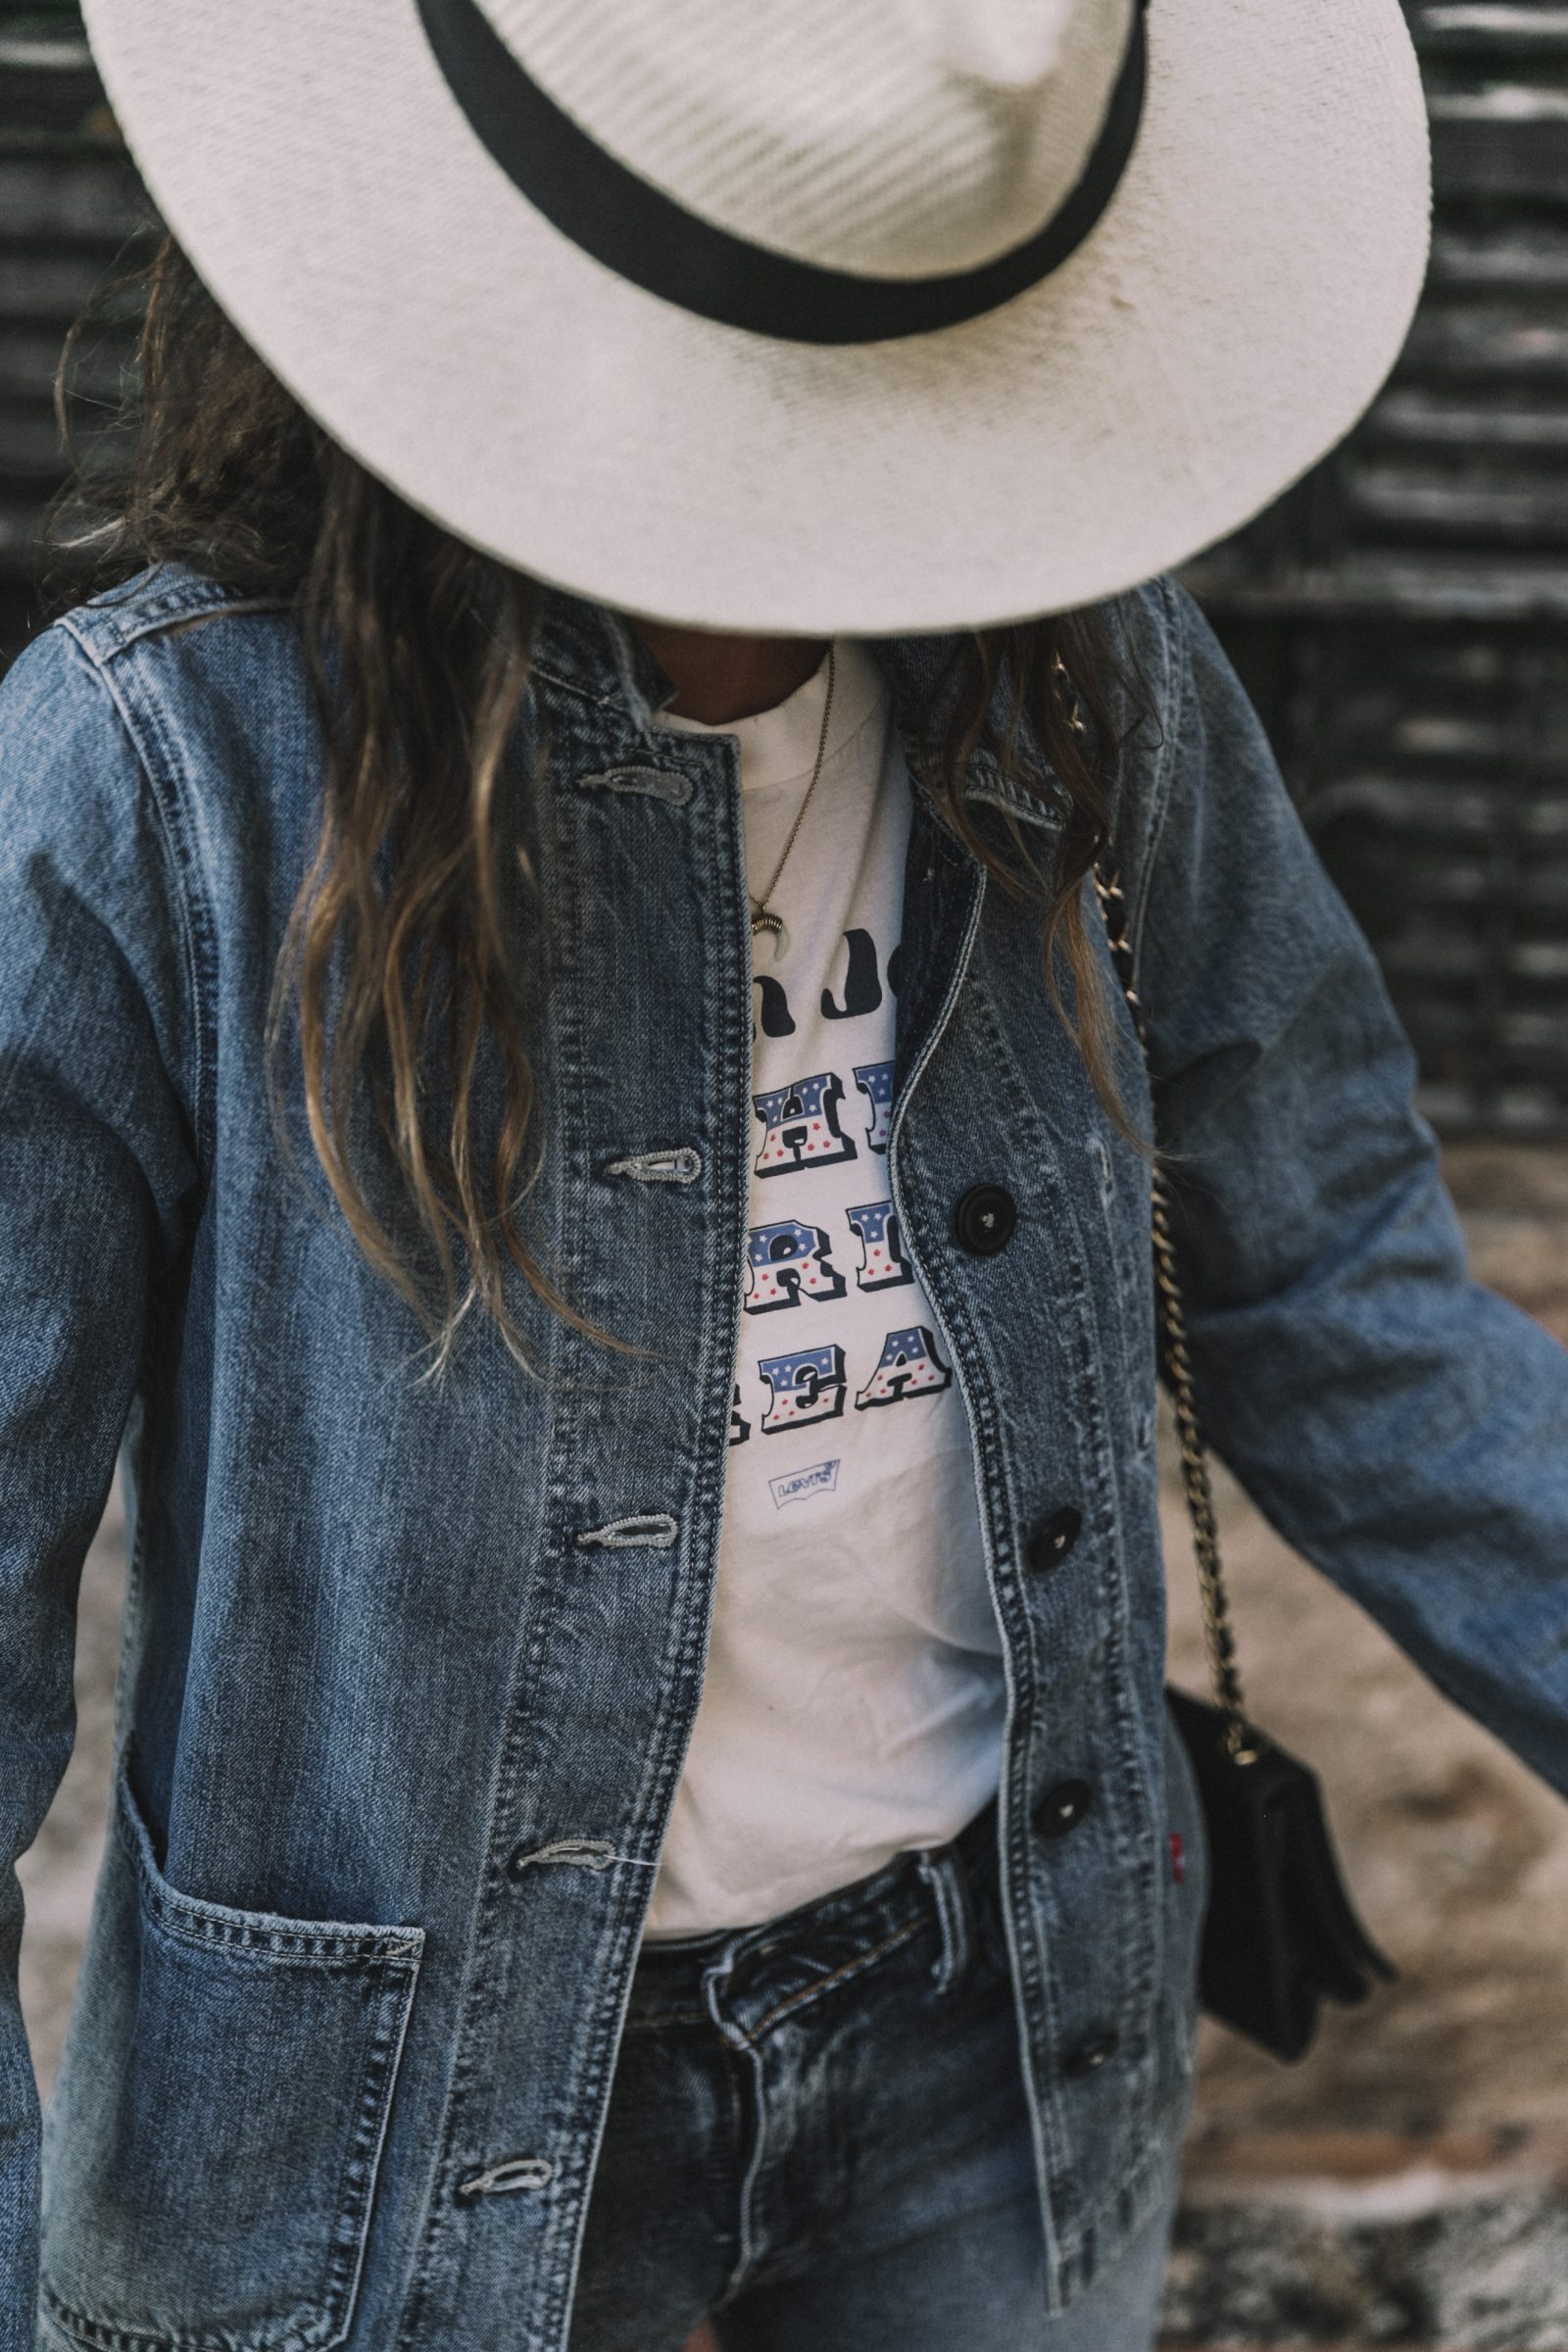 Live_in_Levis-Denim-Who_What_Wear-Levis-Denim-Double_Denim-Menorca-Street_Style-Collage_Vintage-135